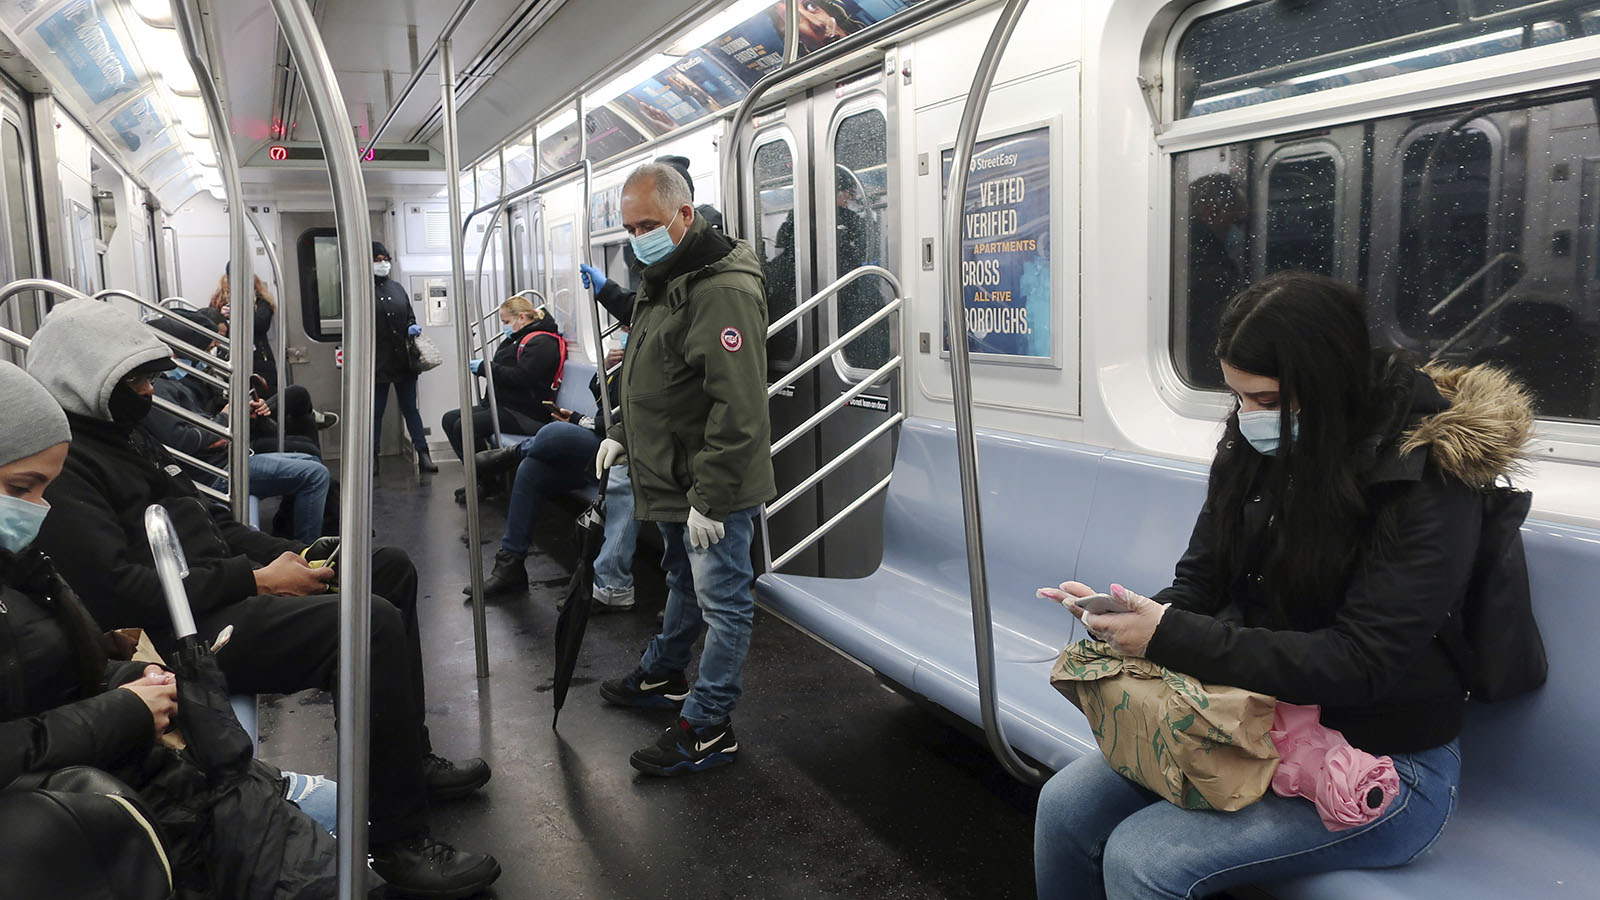 People in face masks ride the subway in New York on April 13.